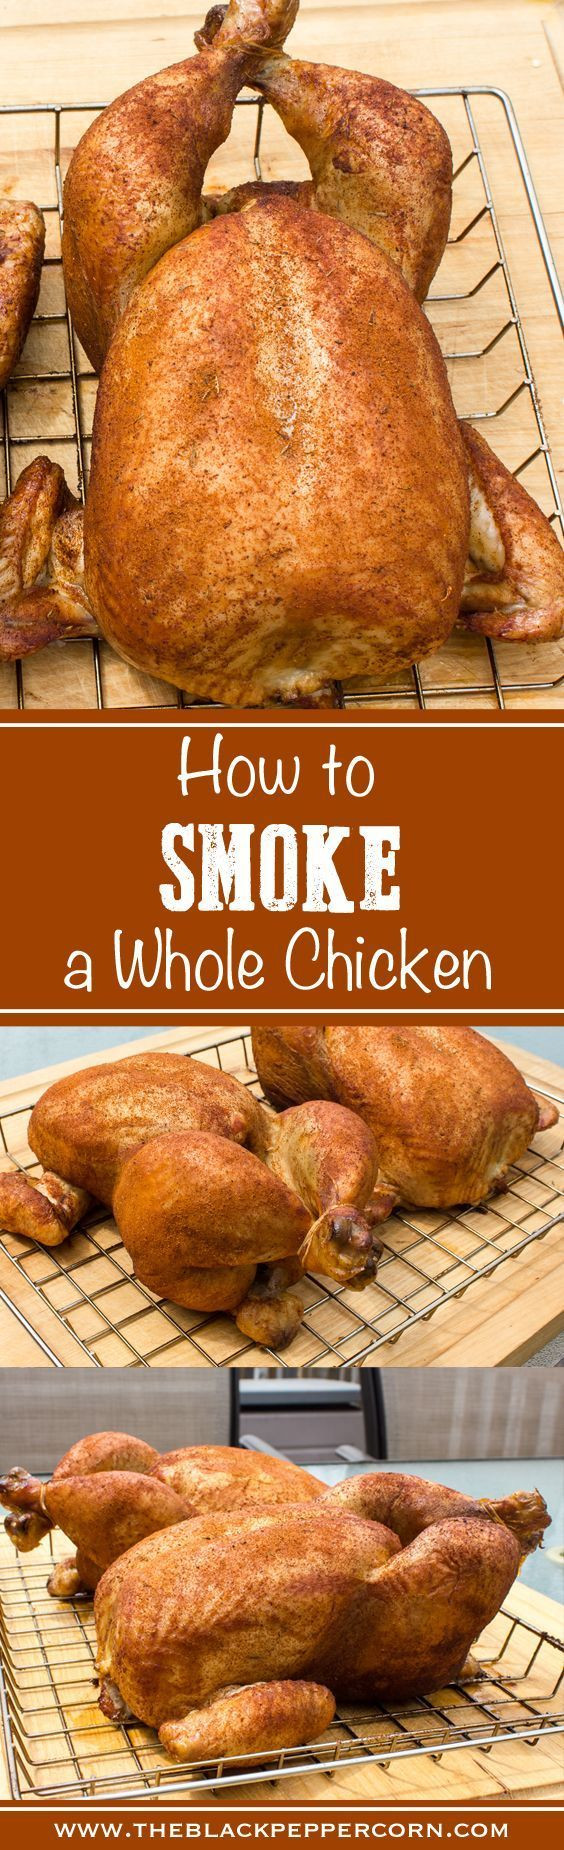 Smoking Whole Chicken In Masterbuilt Electric Smoker  1309 best BBQ & Smoked Food images on Pinterest